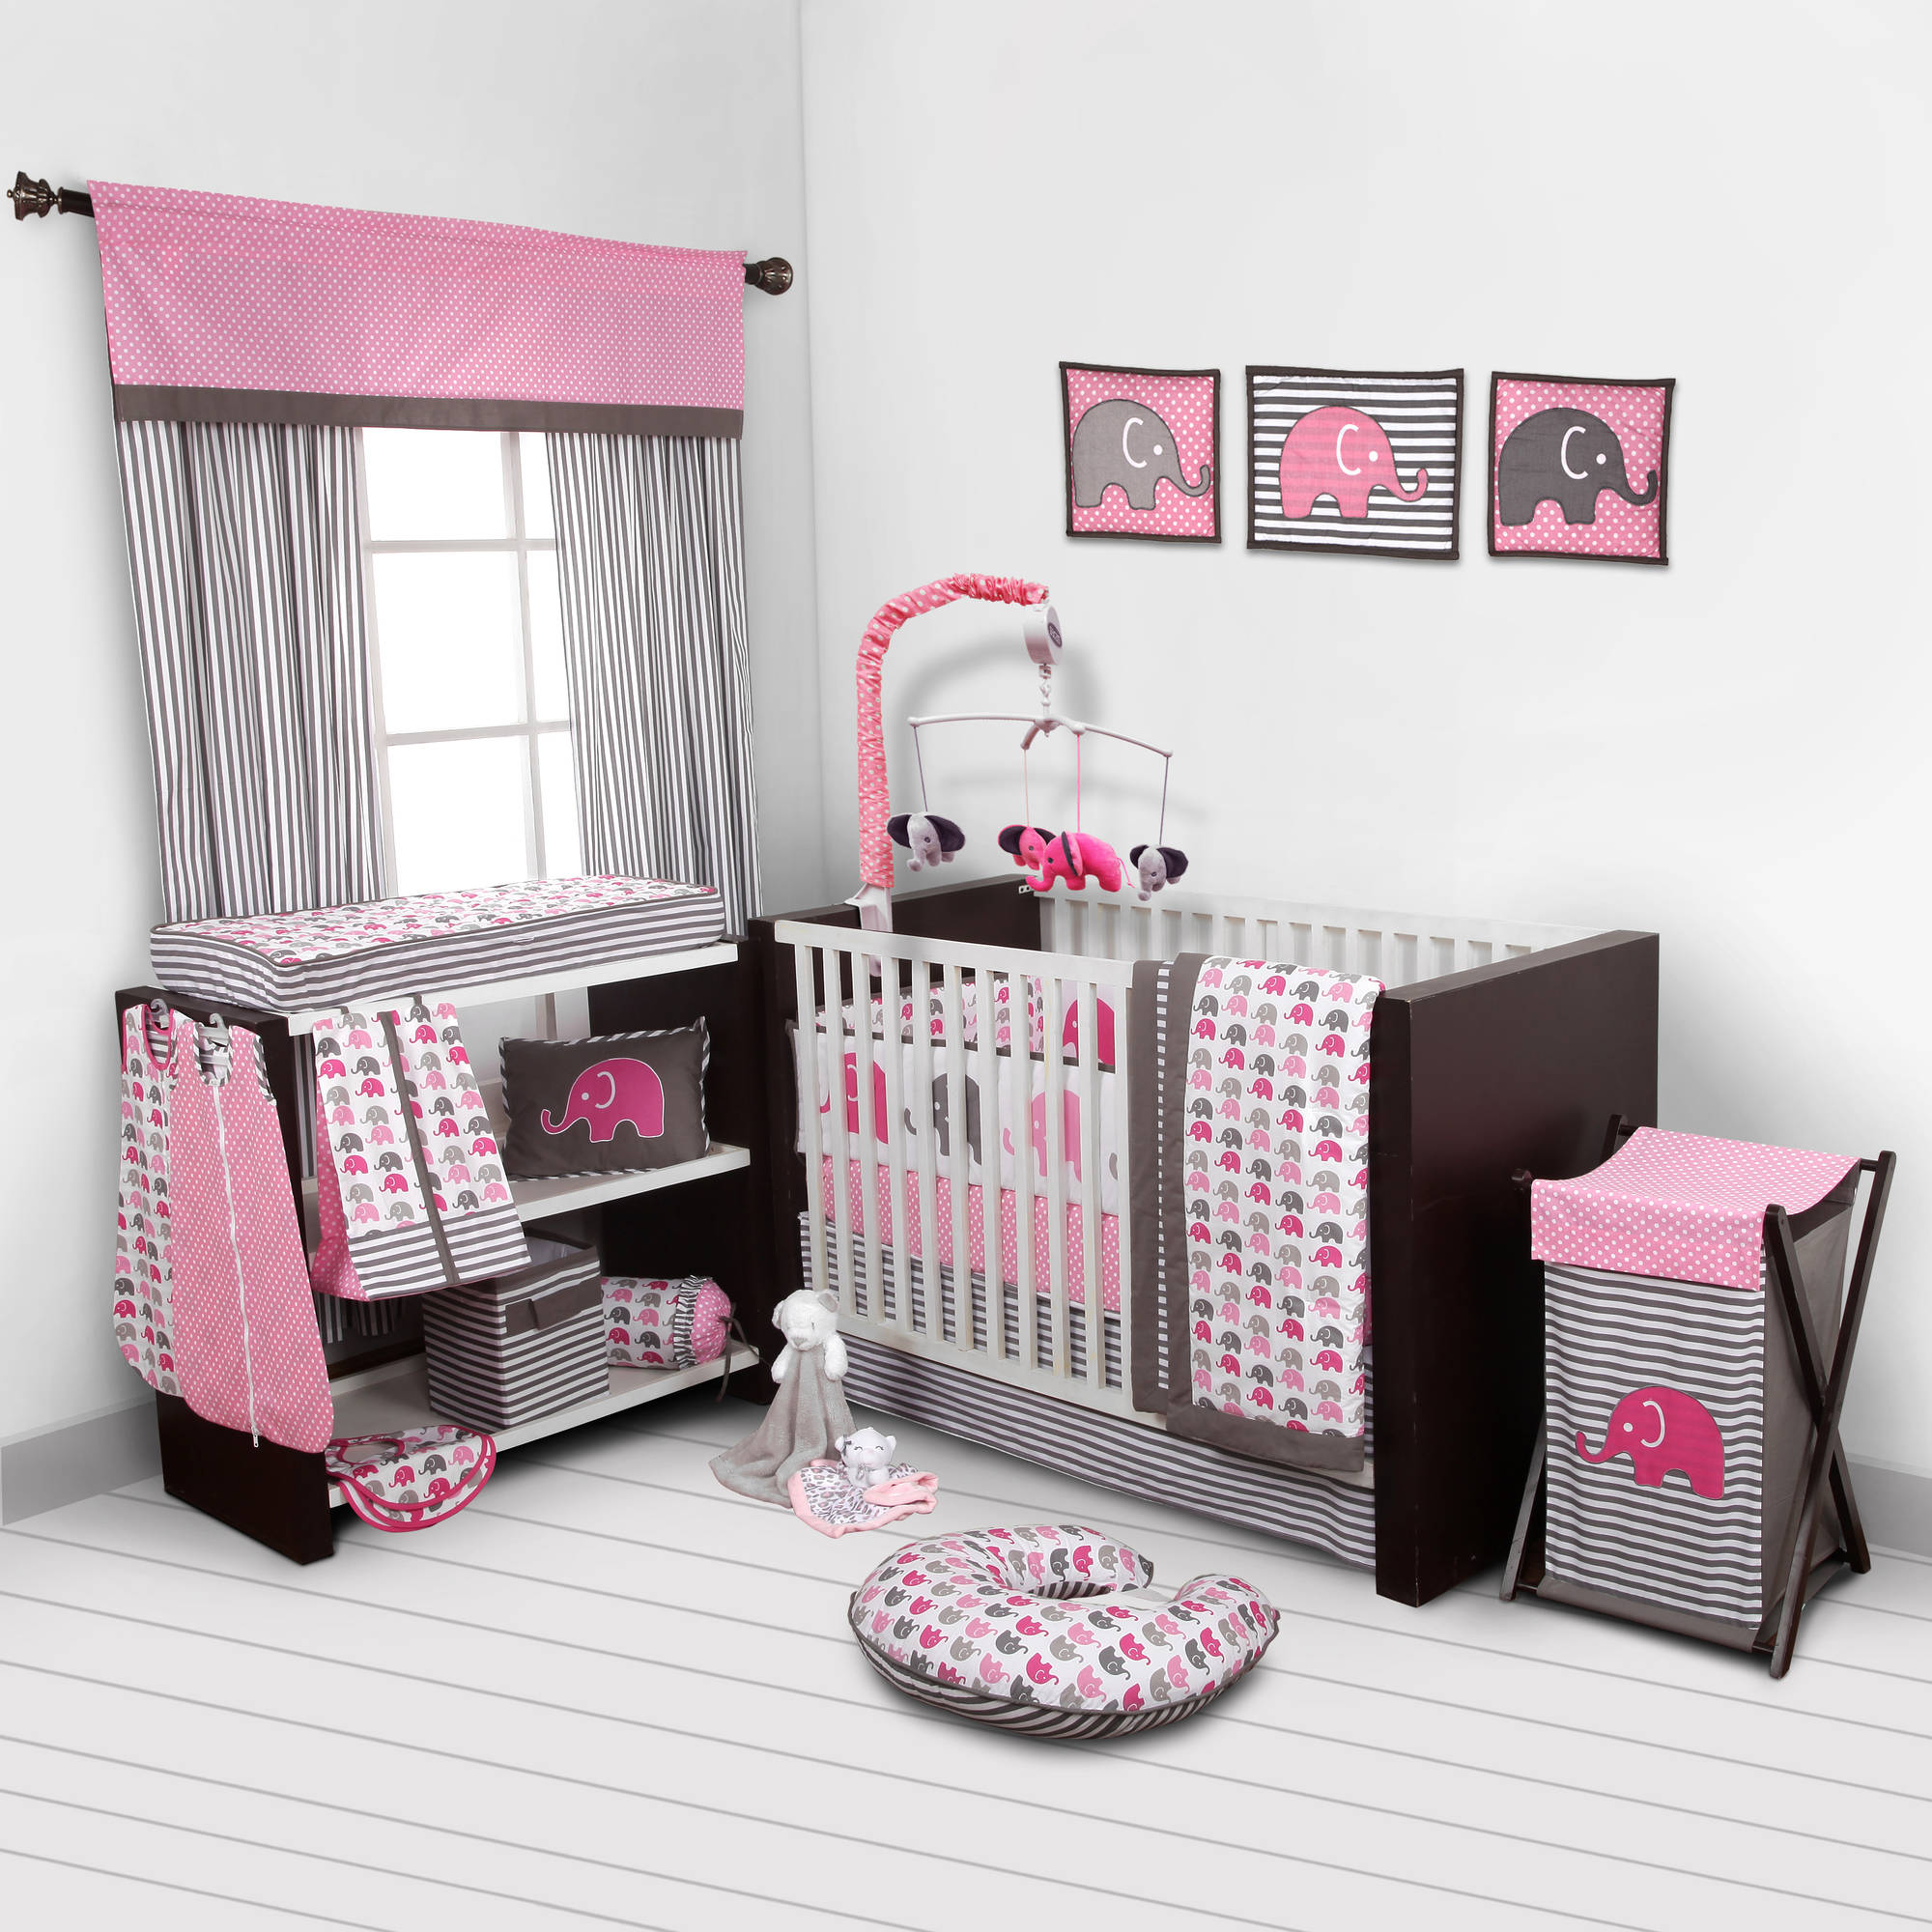 Bacati Elephants 10-Piece Nursery in a Bag Crib Bedding Set with Bumper Pad, Pink/Gray for US standard Cribs